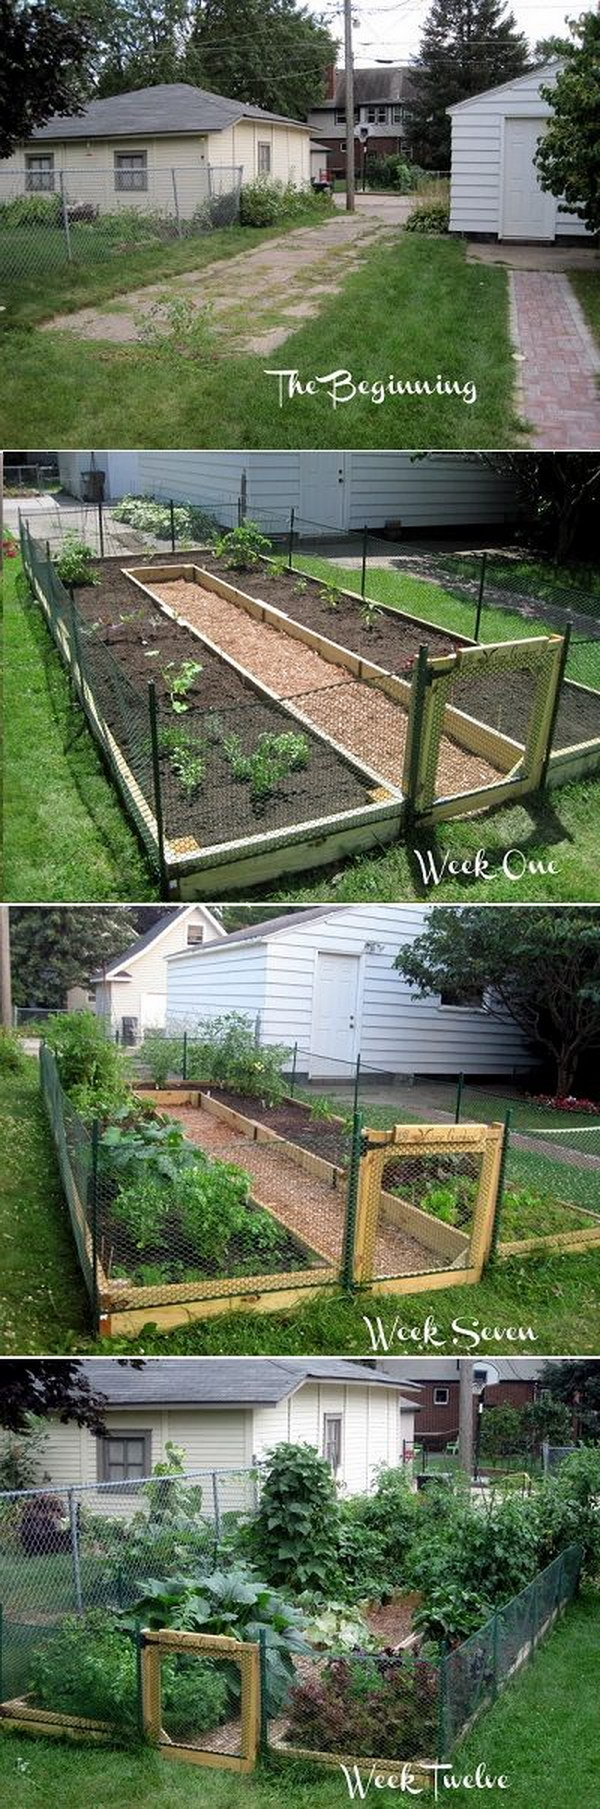 DIY U-Shaped Raised Garden Bed.